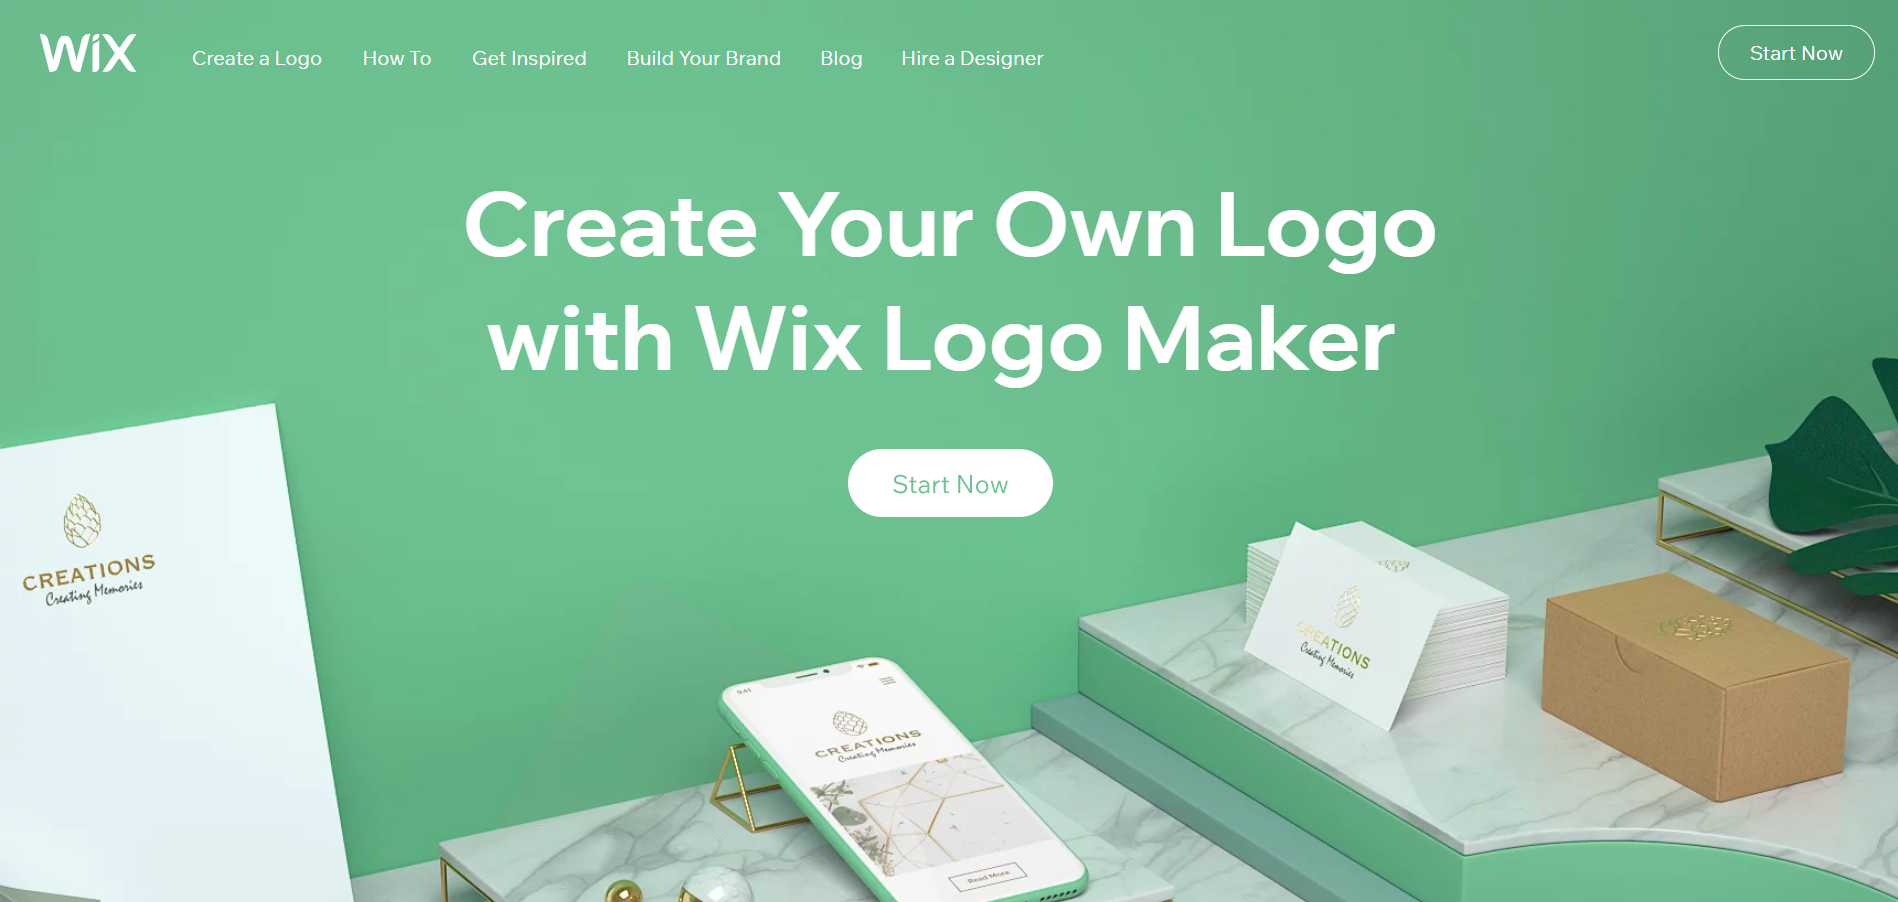 Wix-Overview